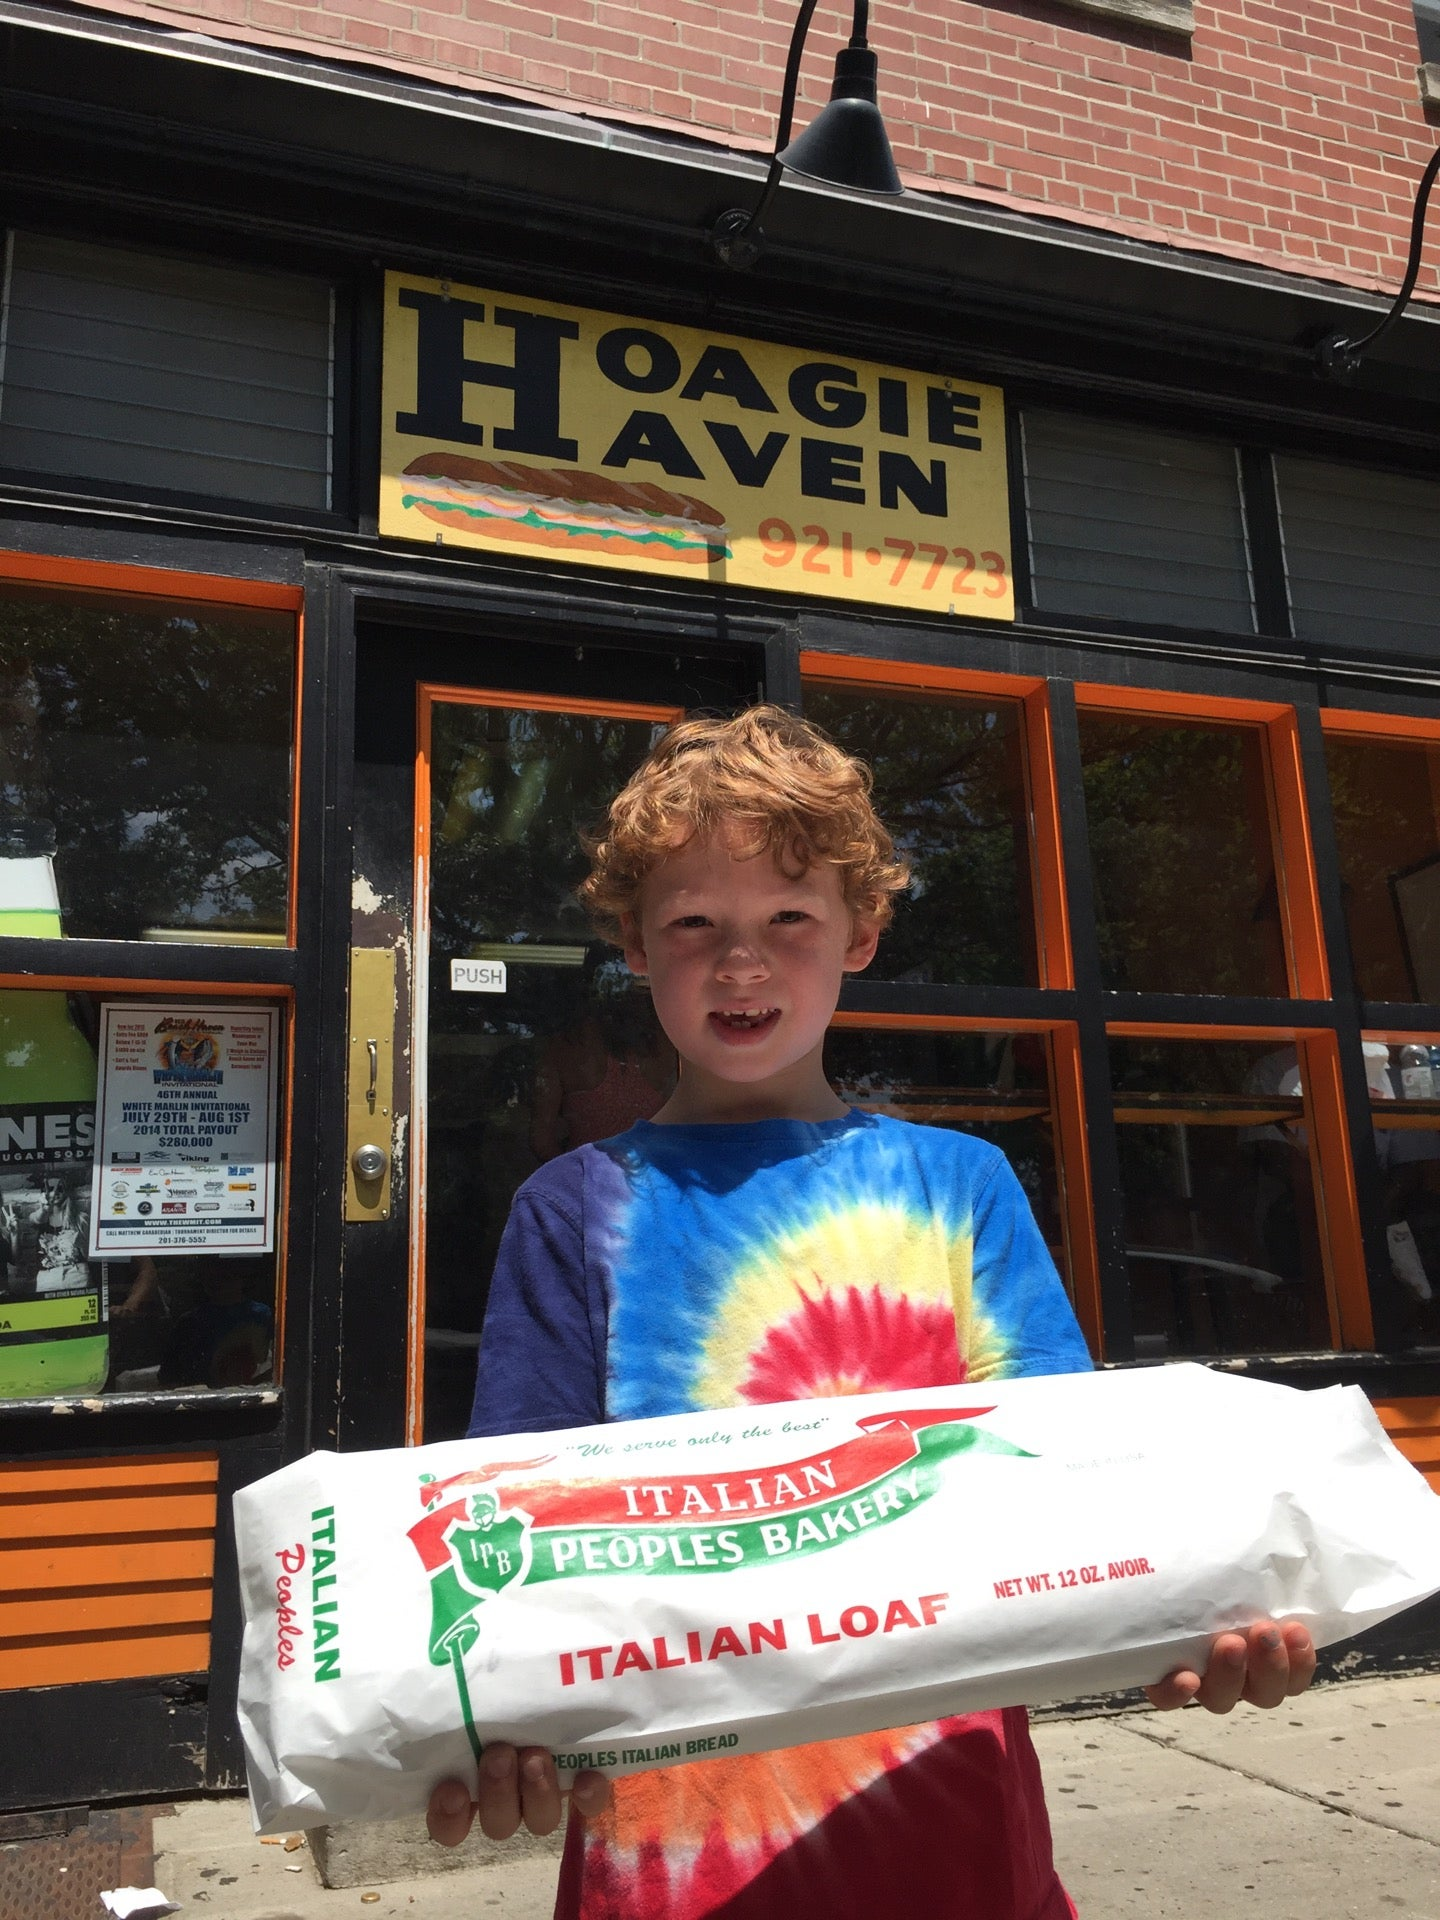 Hoagie Haven of Princeton,cheesesteaks,delicious things,sandwiches,soda,unhealthy things